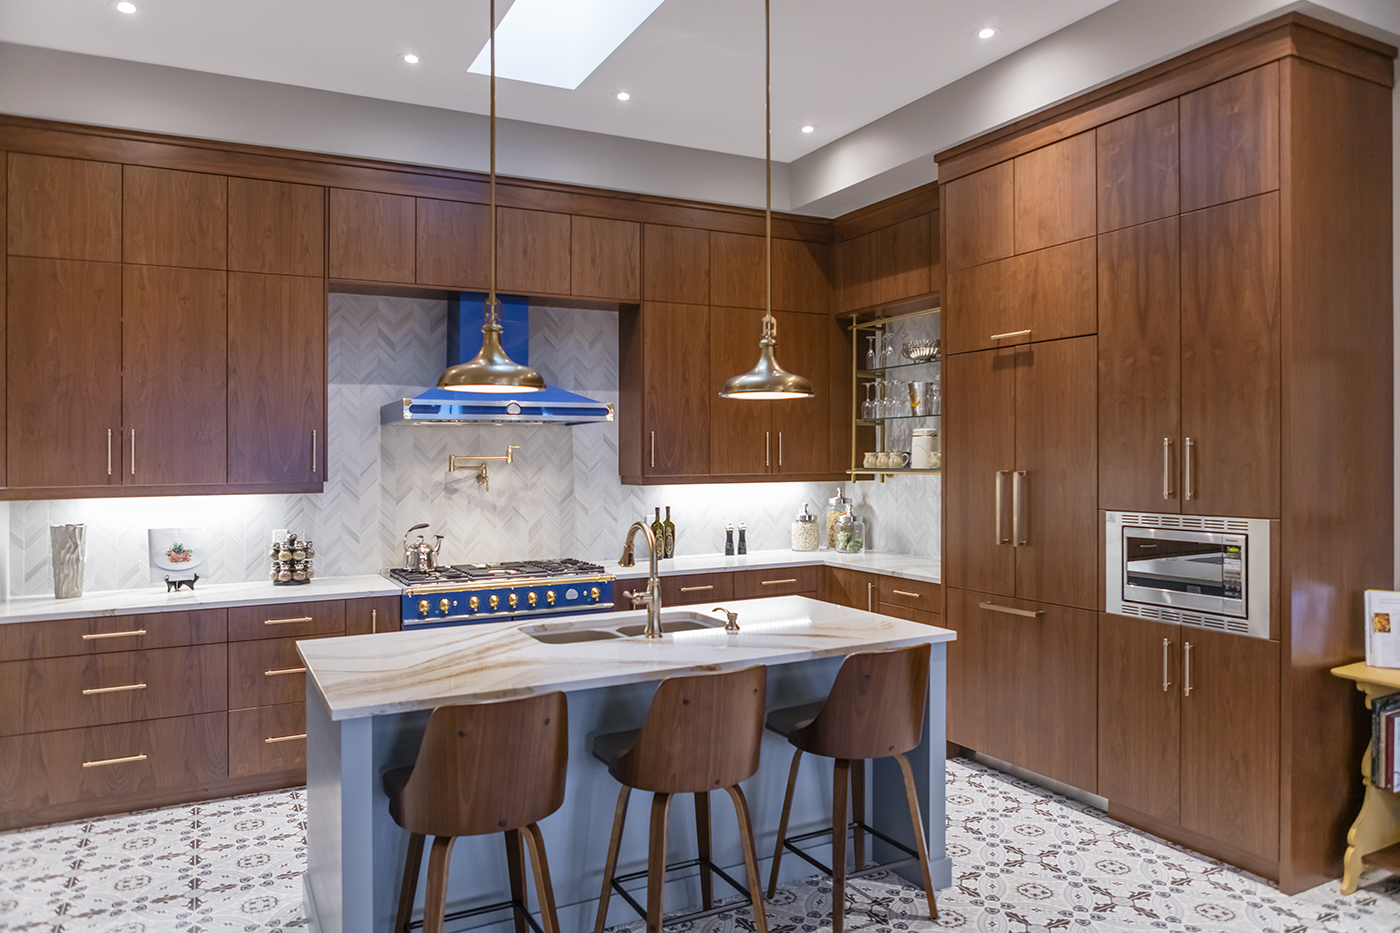 Bespoke Kitchens Jsinke Wood Interiors